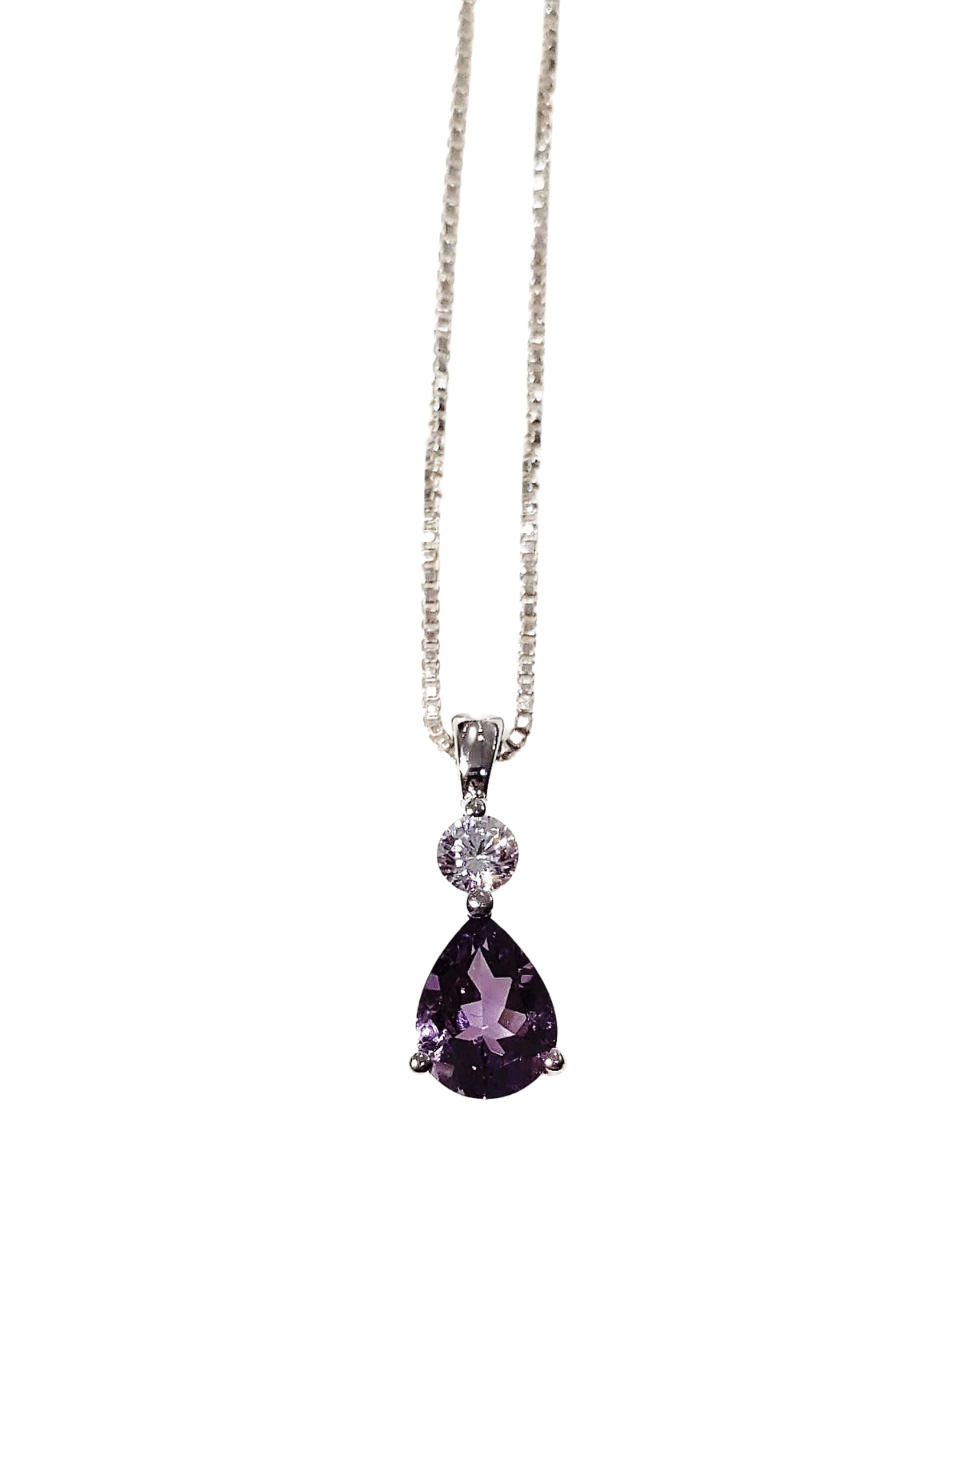 925 sterling silver pendant necklace with amethyst and white cubic zirconia